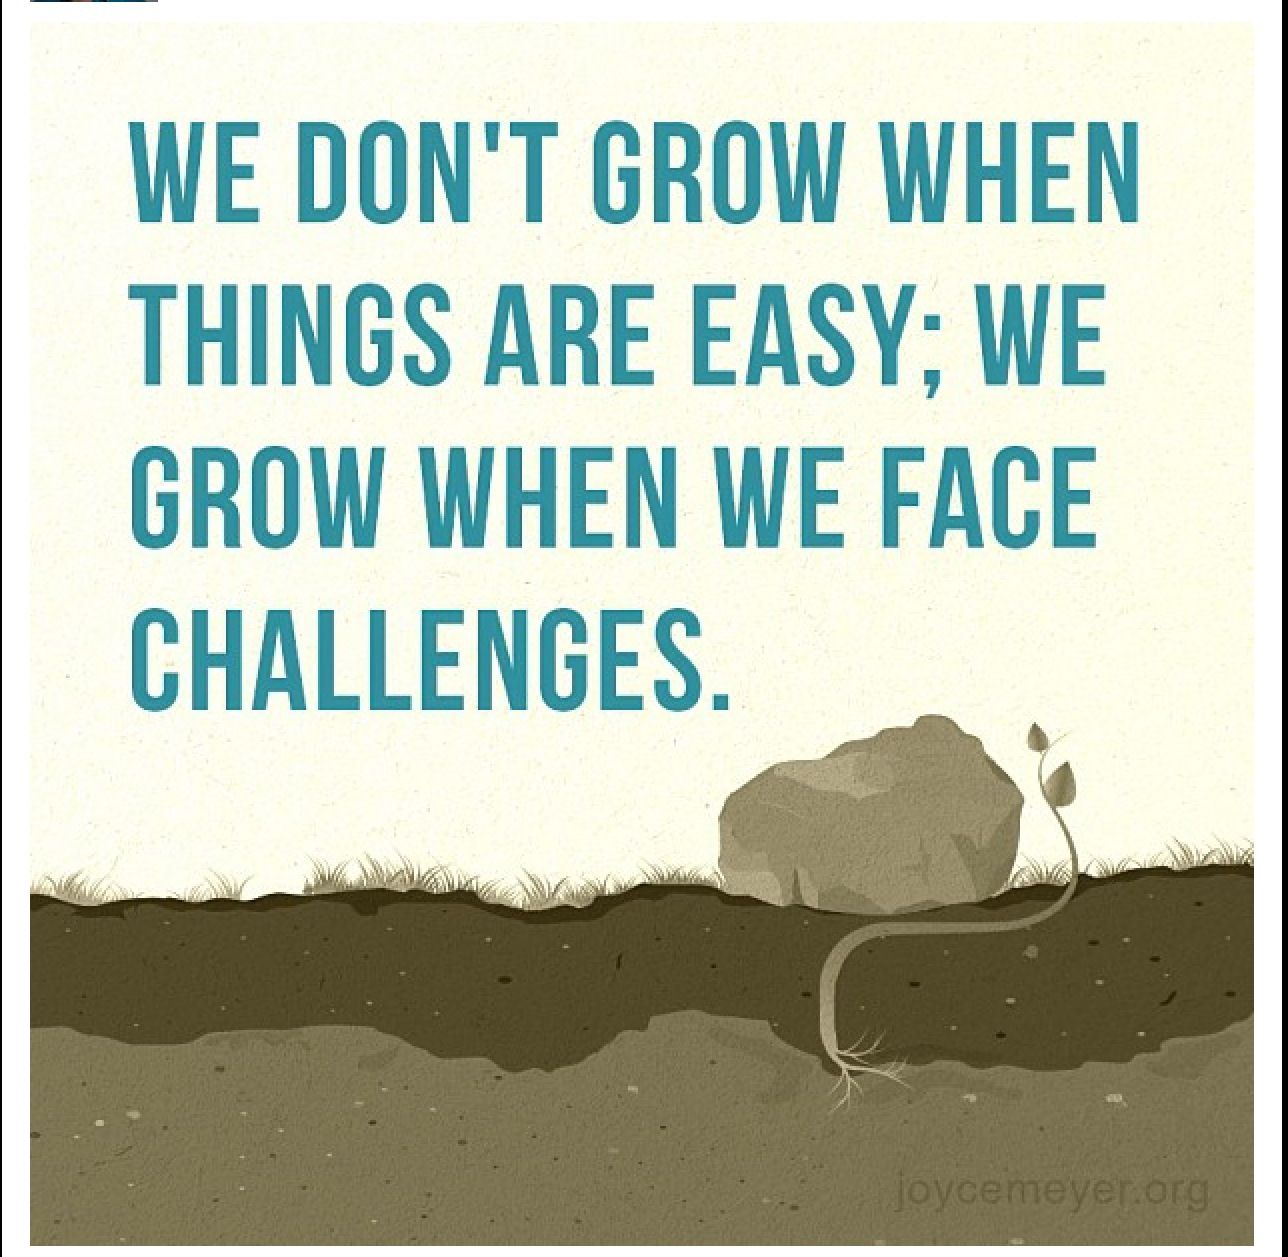 Quotes About Challenges We Don't Grow When Things Are Easy We Grow When We Face